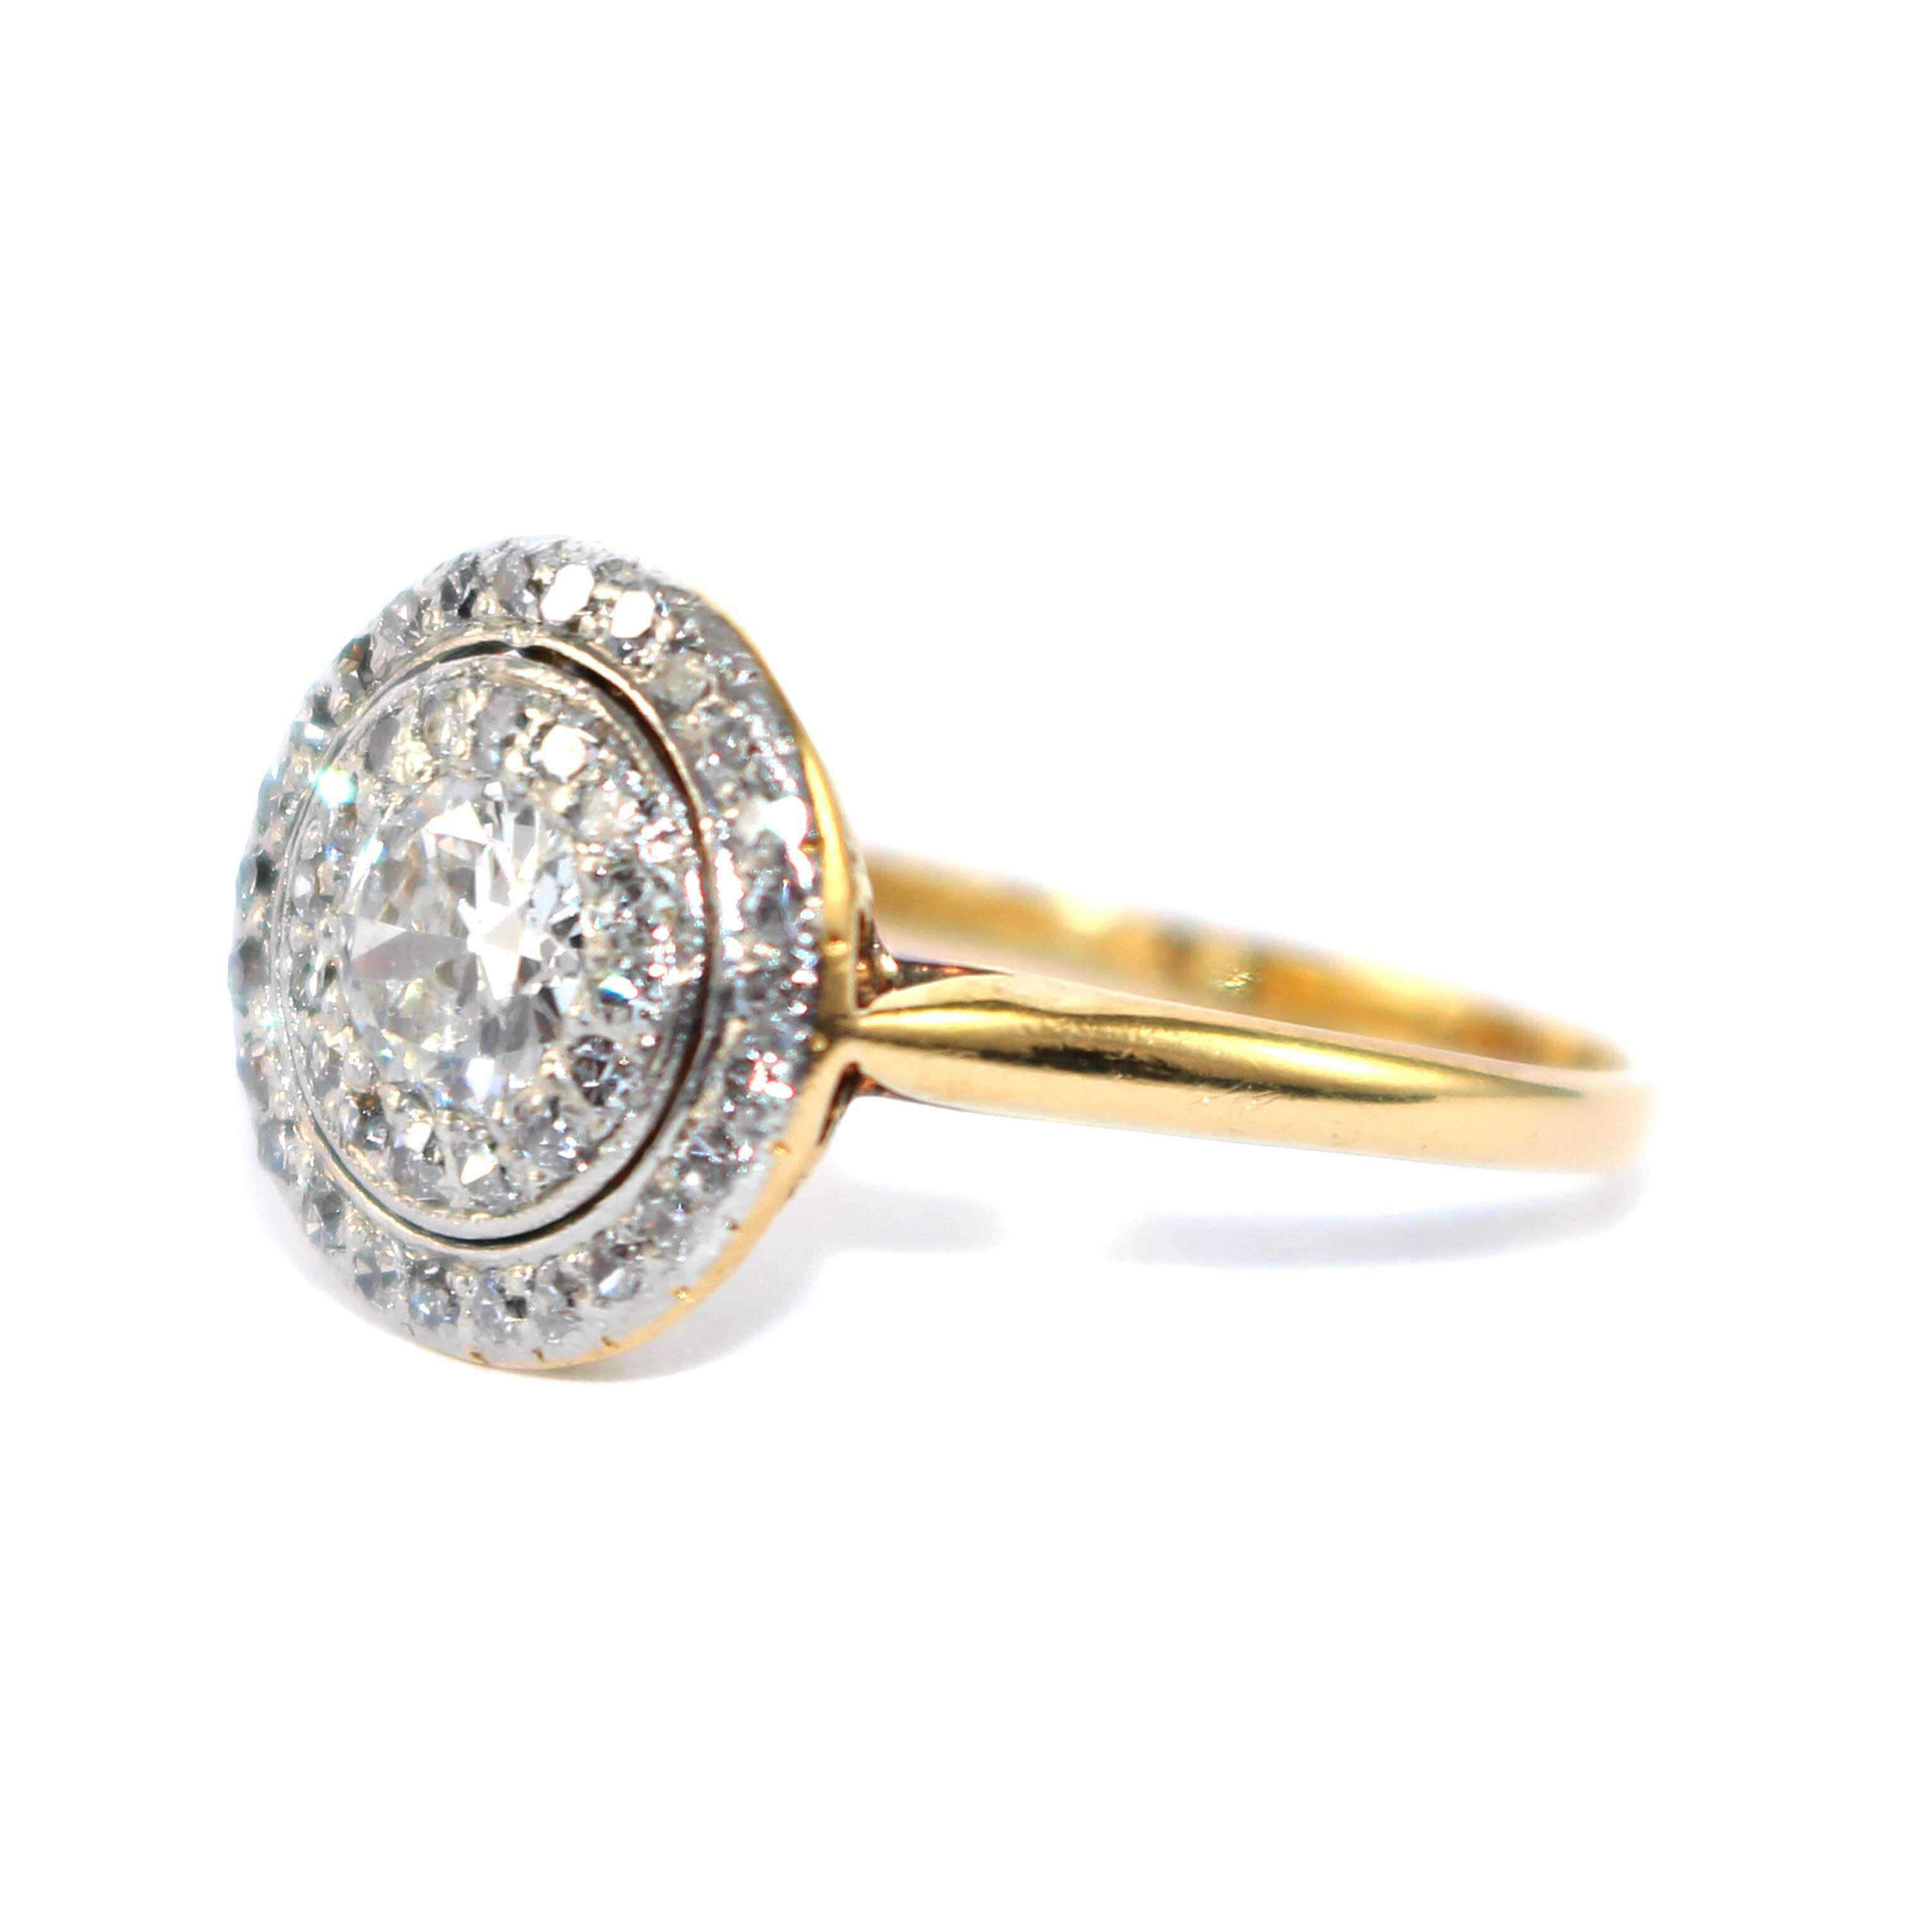 Edwardian Diamond Double Cluster Ring c.1920 in 2020